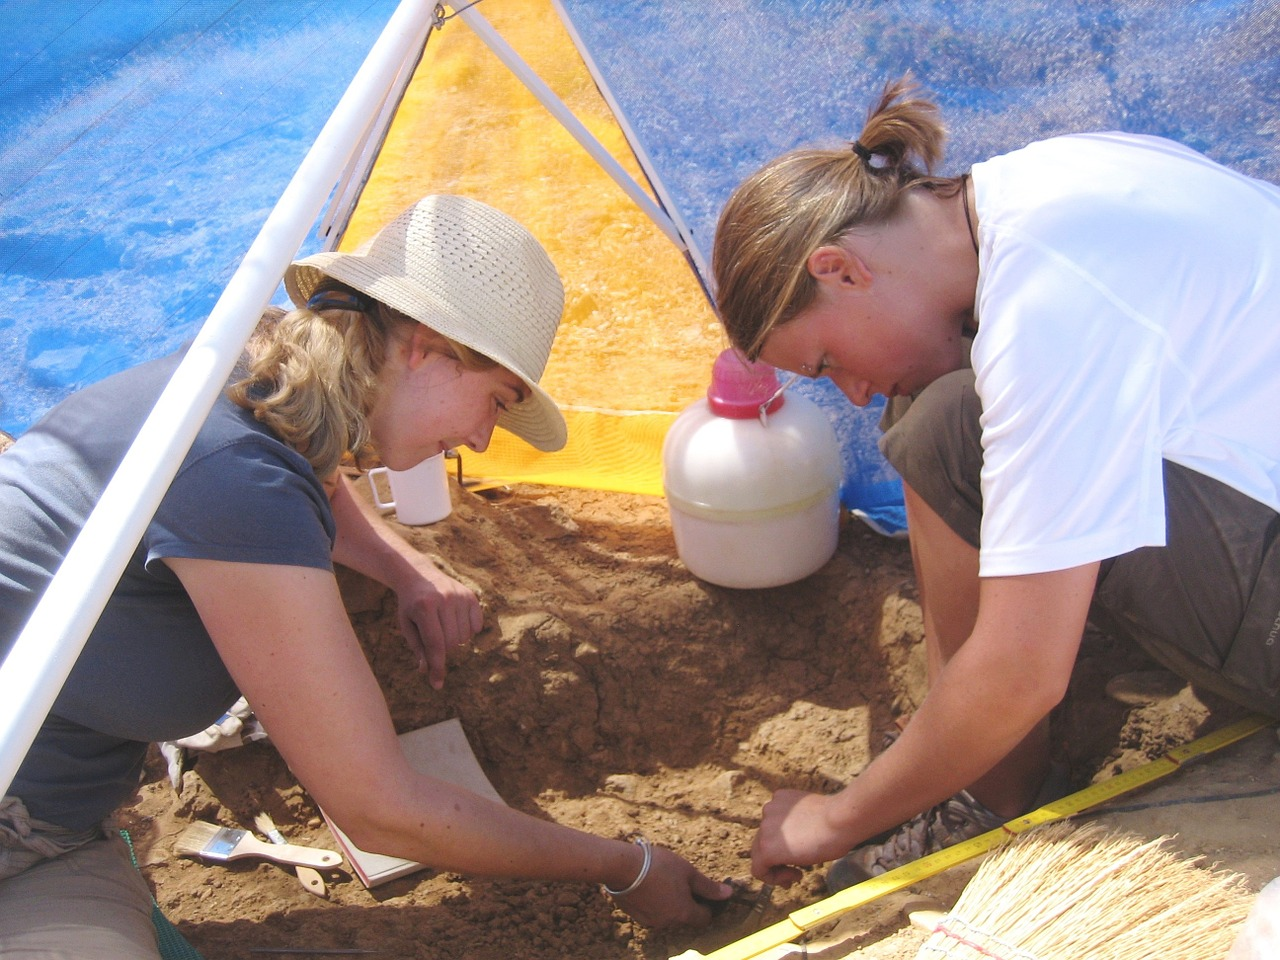 Don't miss the opportunity to join an excavation tour on your visit to Greece, a once-in-a-lifetime unique experience!